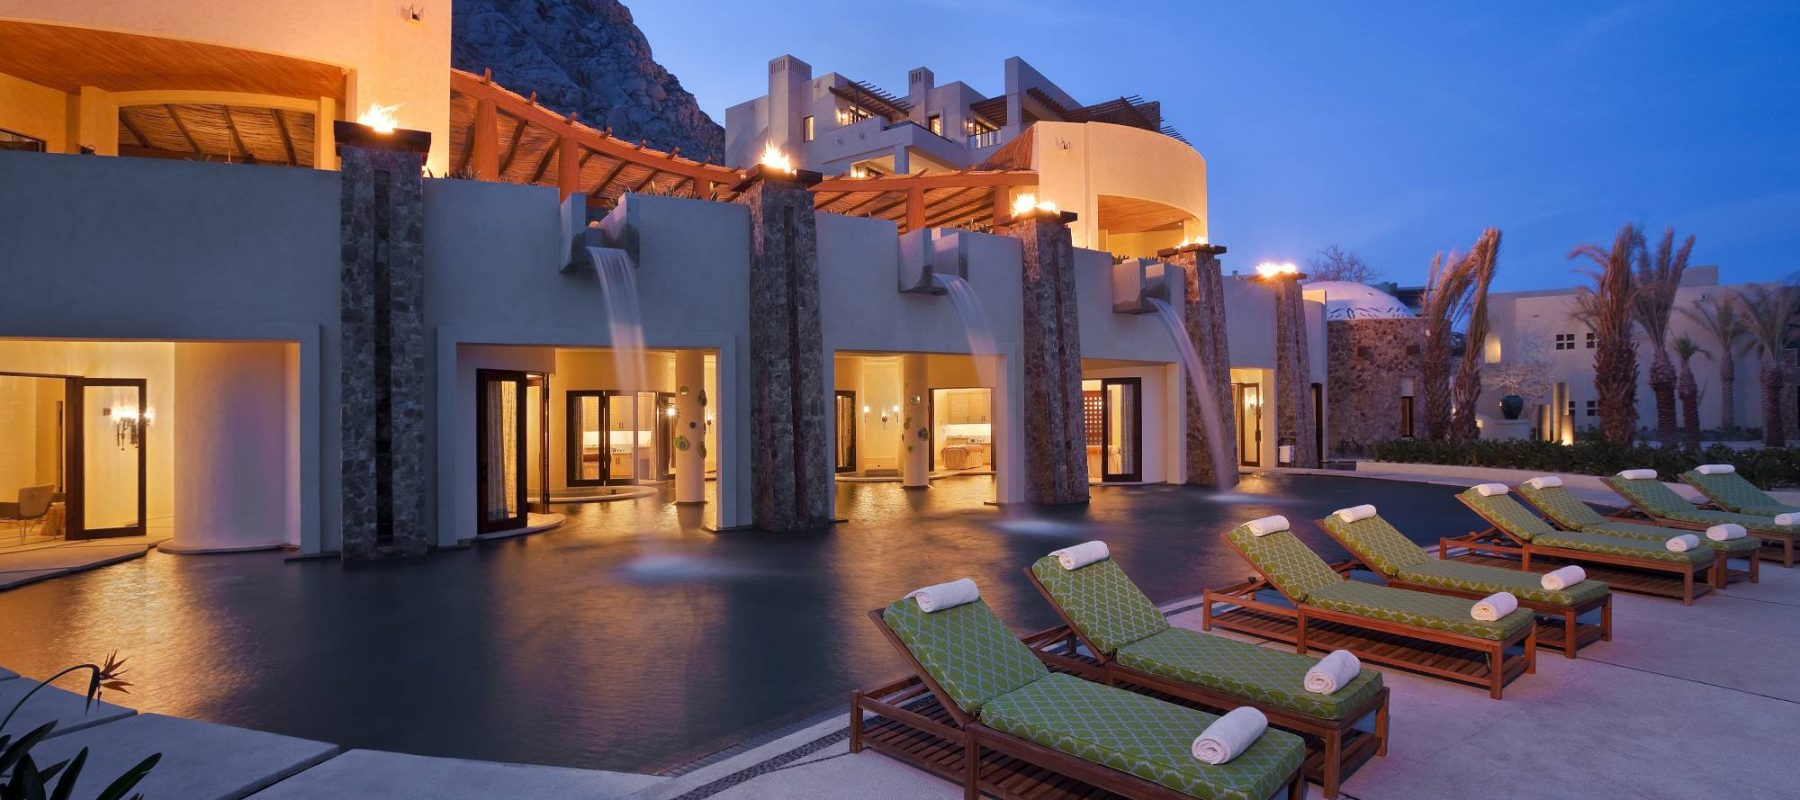 The resort at pedregal luxury cabo san lucas villas resort for Pedregal cabo san lucas